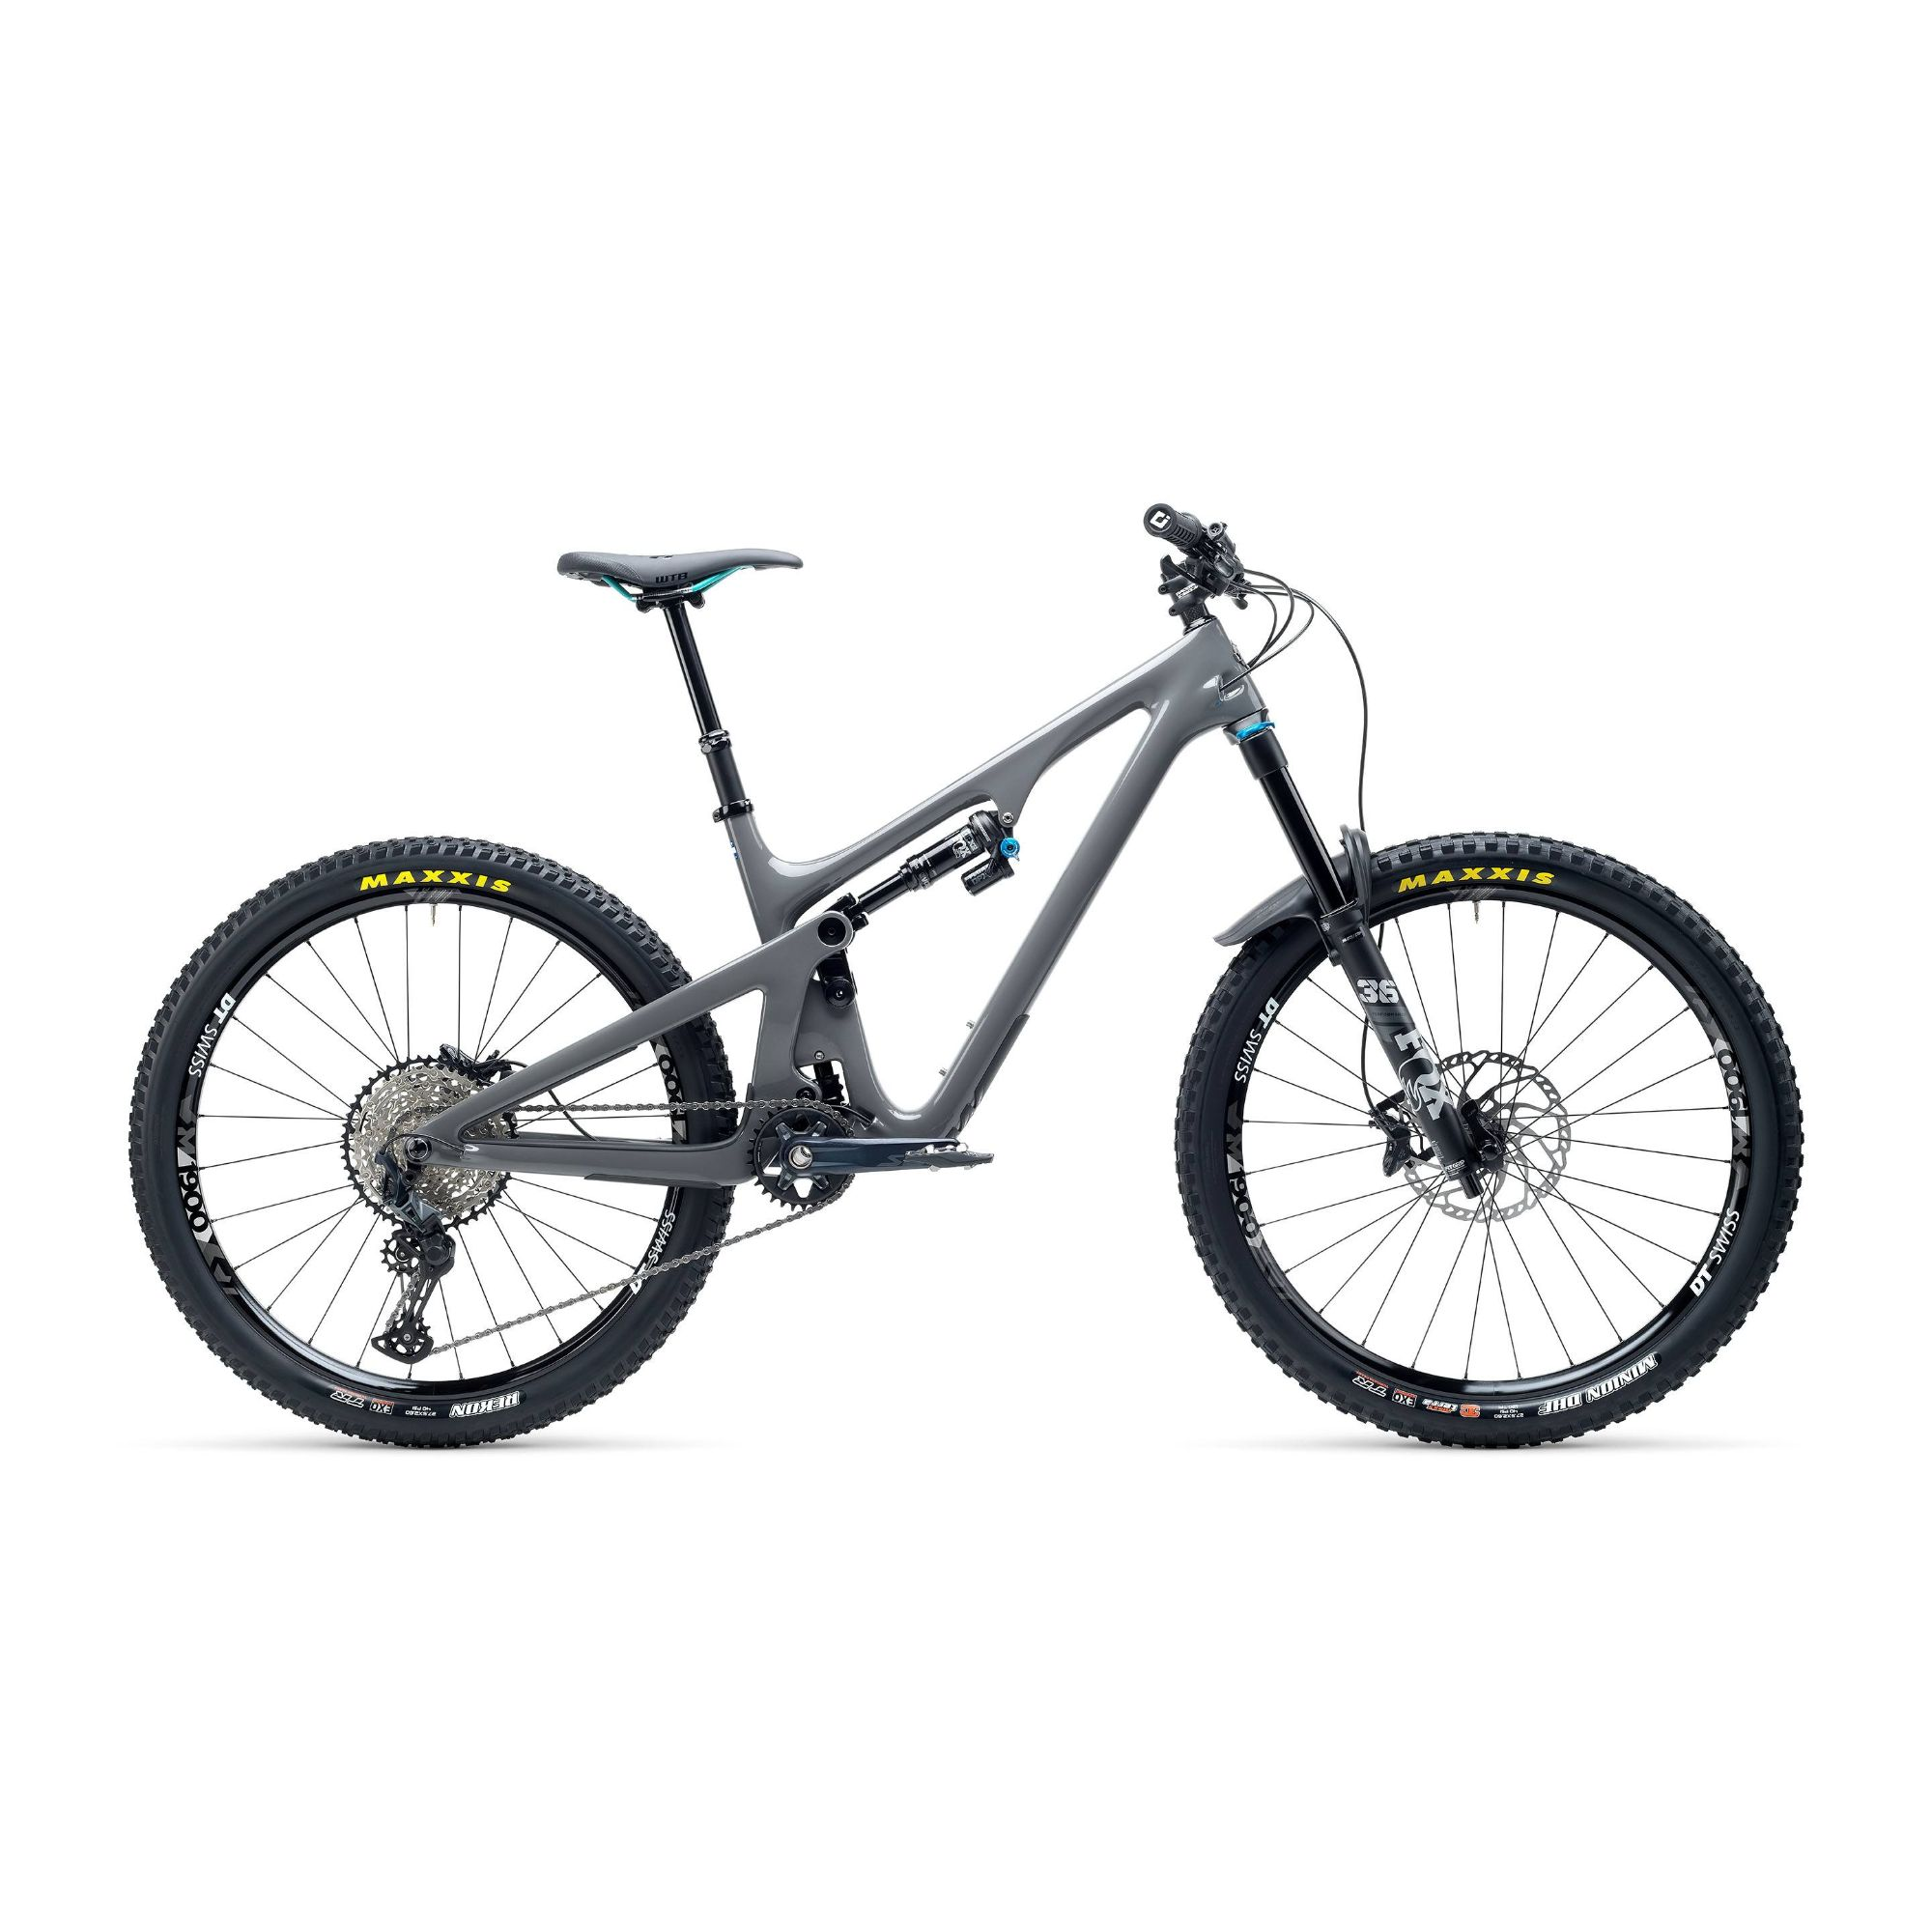 Yeti SB140 C-Series C1 27.5 SLX 12spd Carbon Mountain Bike 2021 Smoke